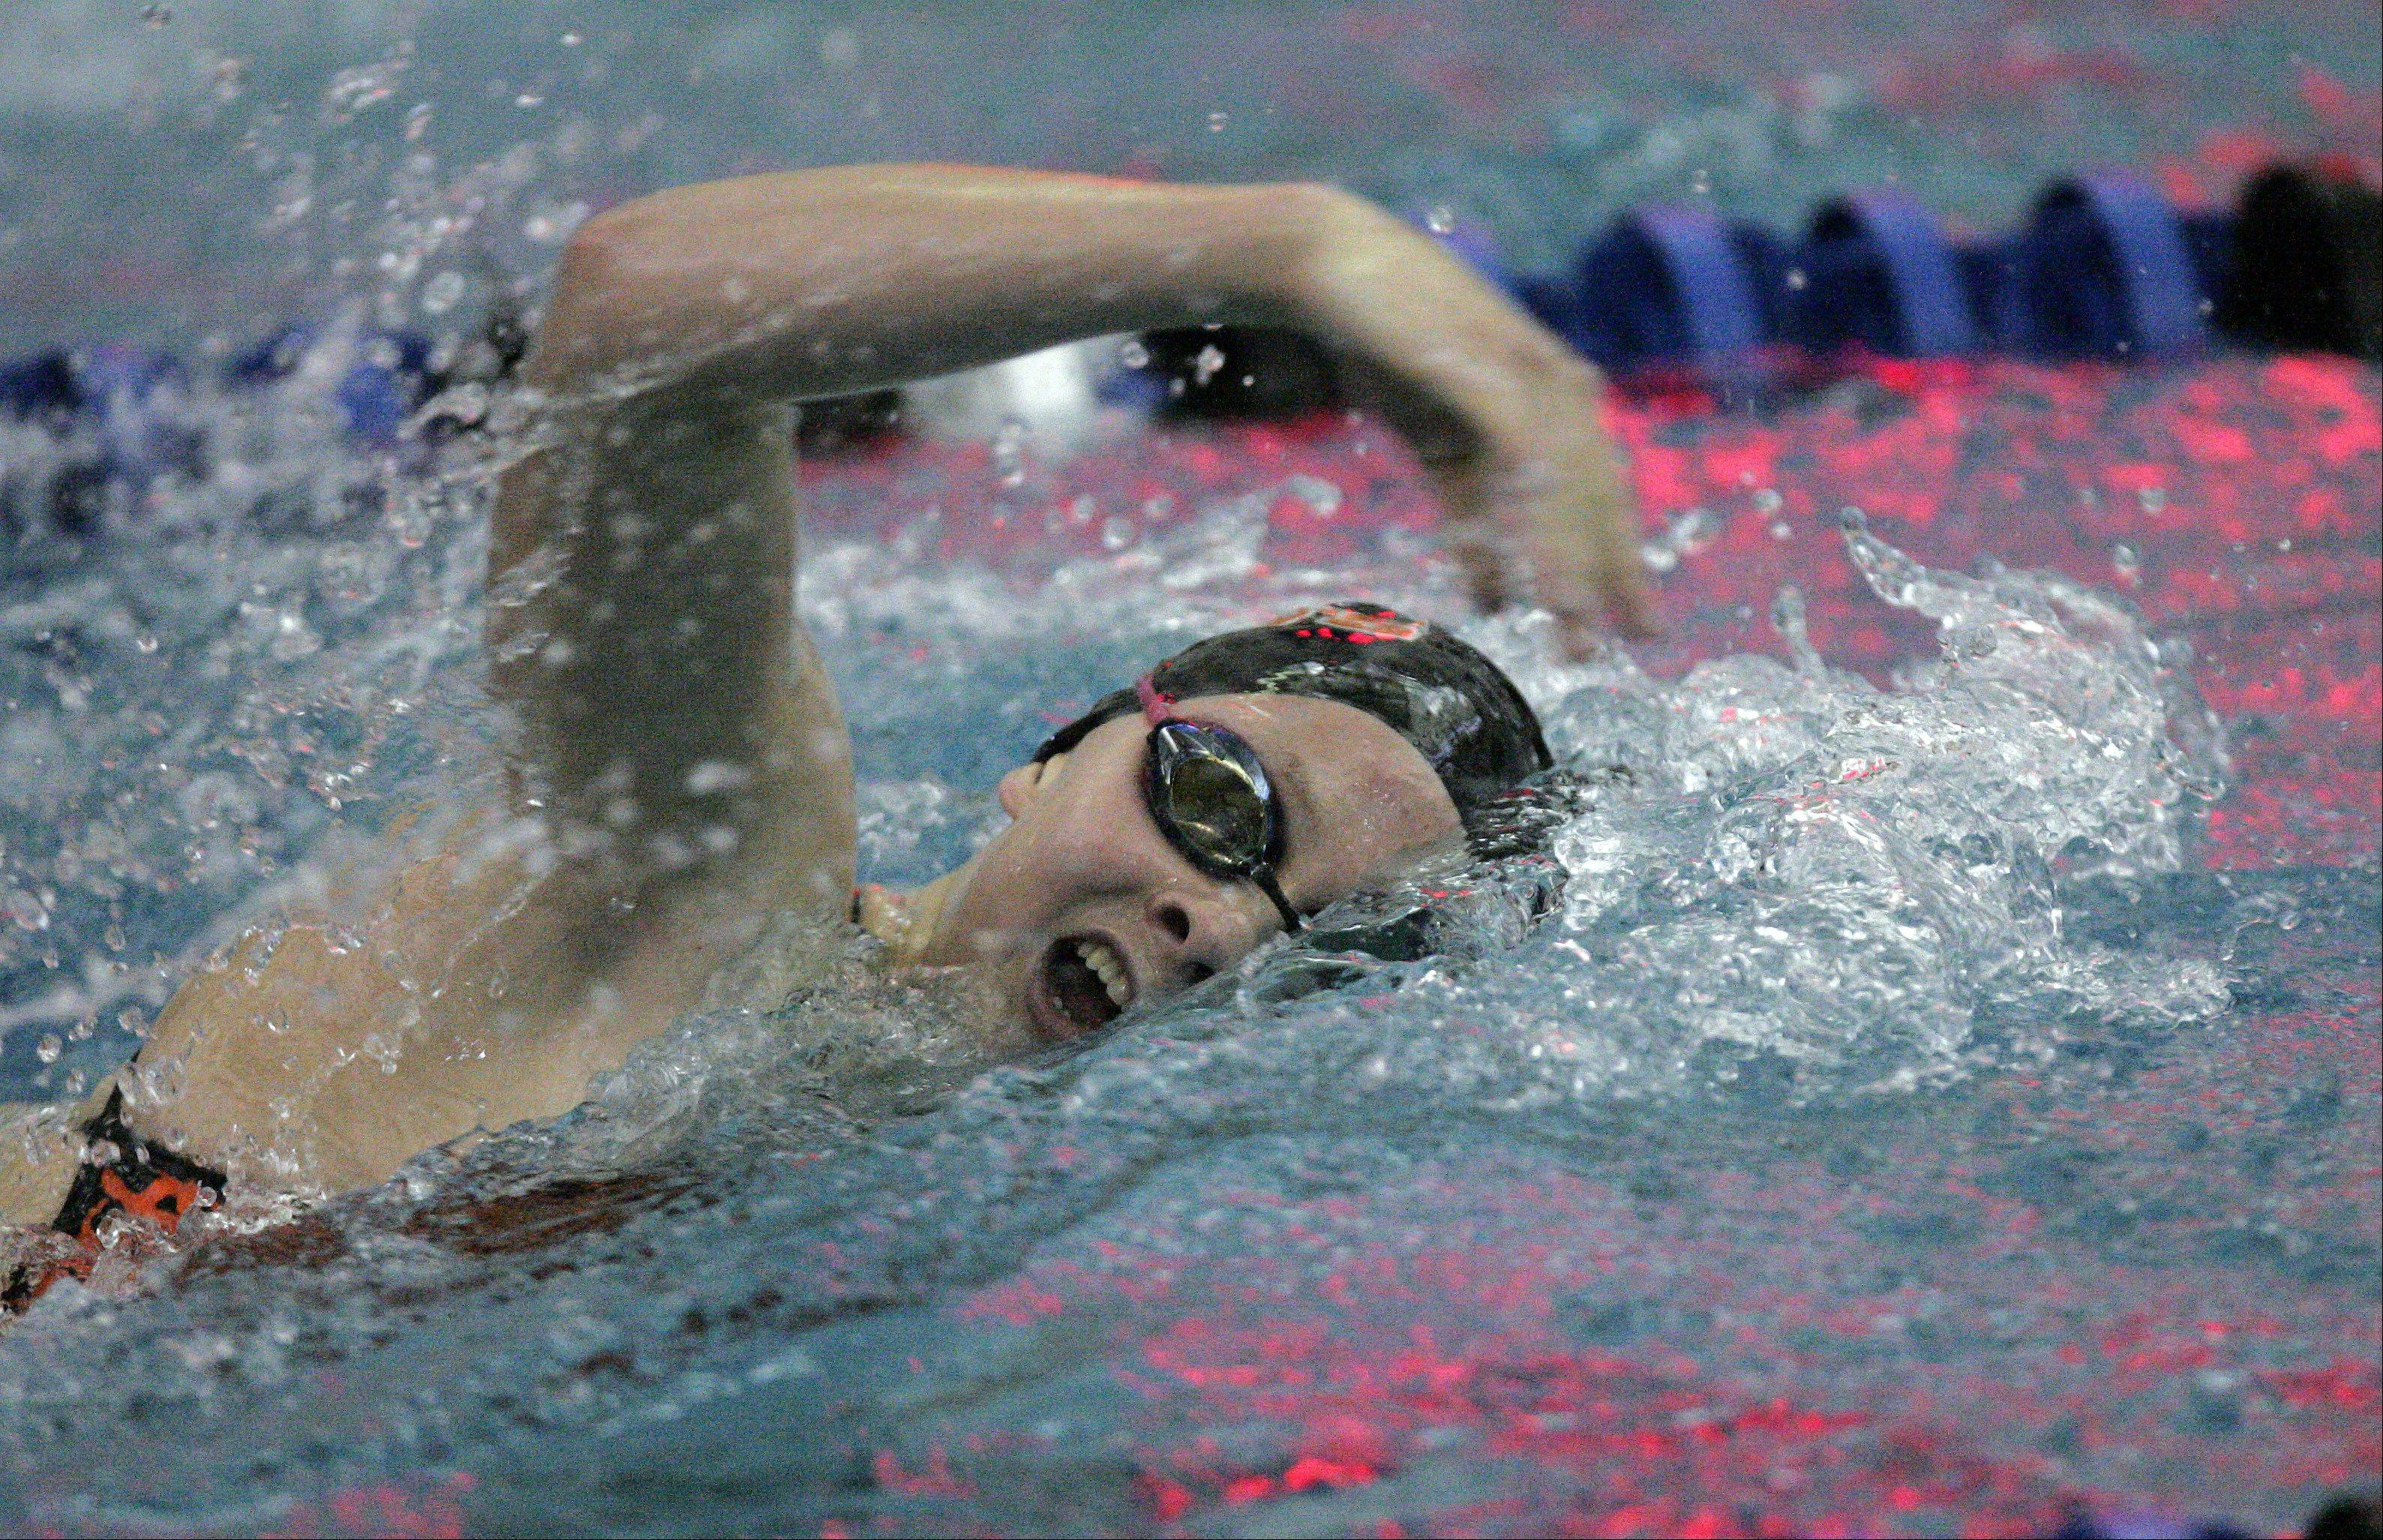 BRIAN HILL/bhill@dailyherald.comMary Snyder of St. Charles East swims the 200 yard freestyle race during the St. Charles North girls swimming sectional Saturday November 10, 2012.